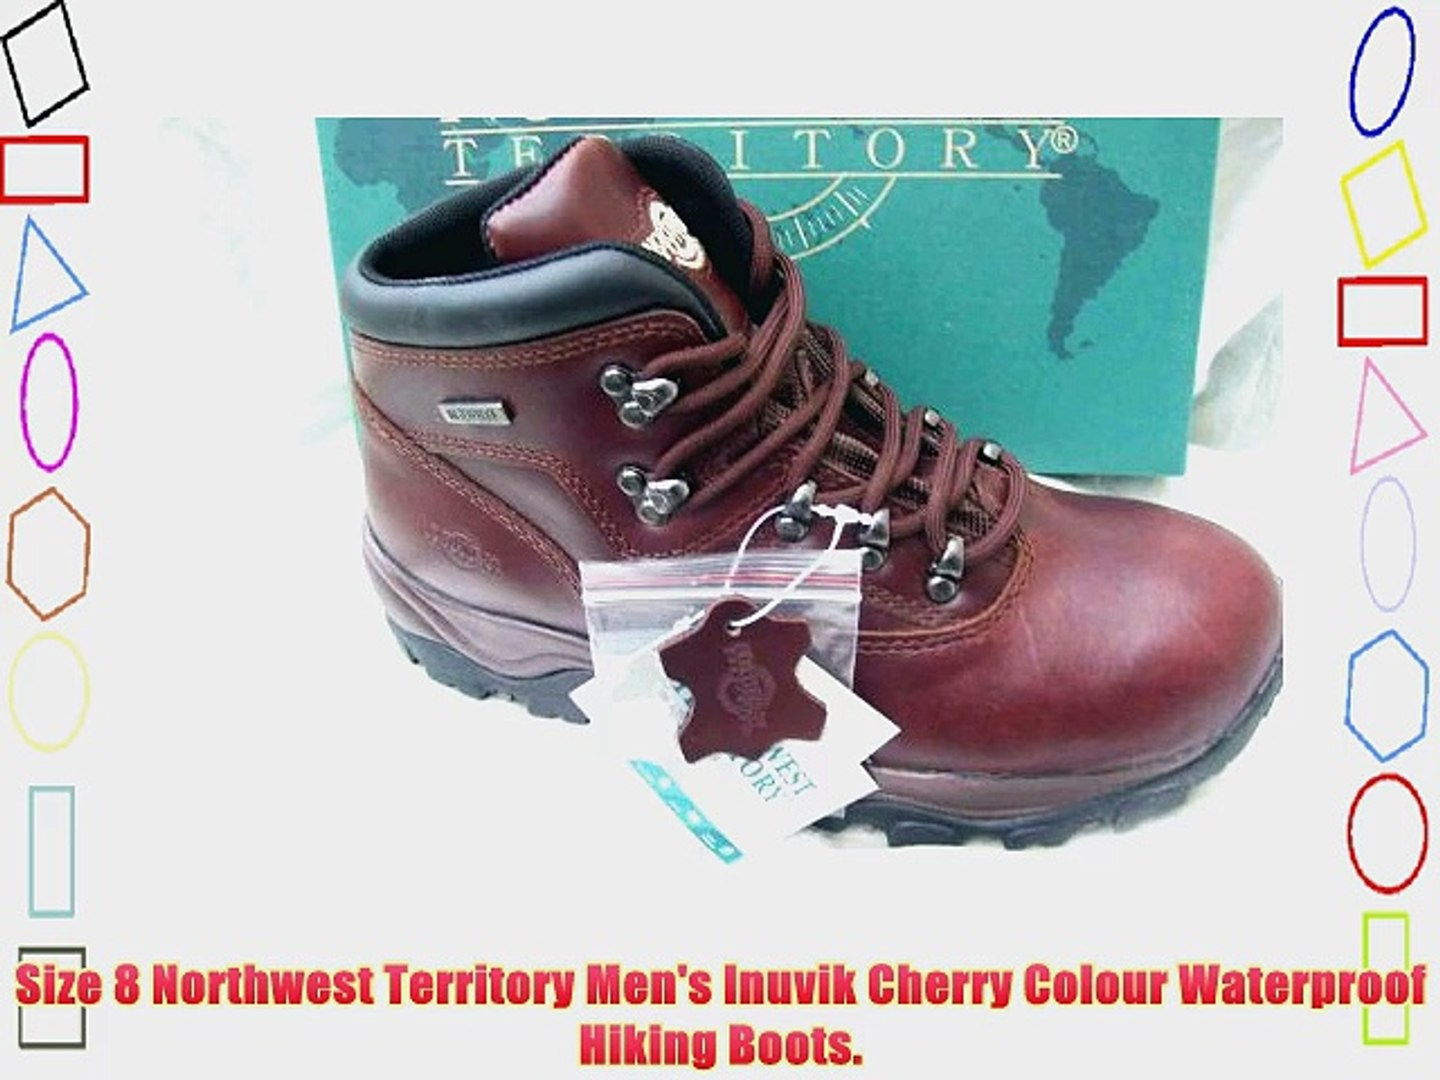 442fbb9d18a Size 8 Northwest Territory Men's Inuvik Cherry Colour Waterproof Hiking  Boots.